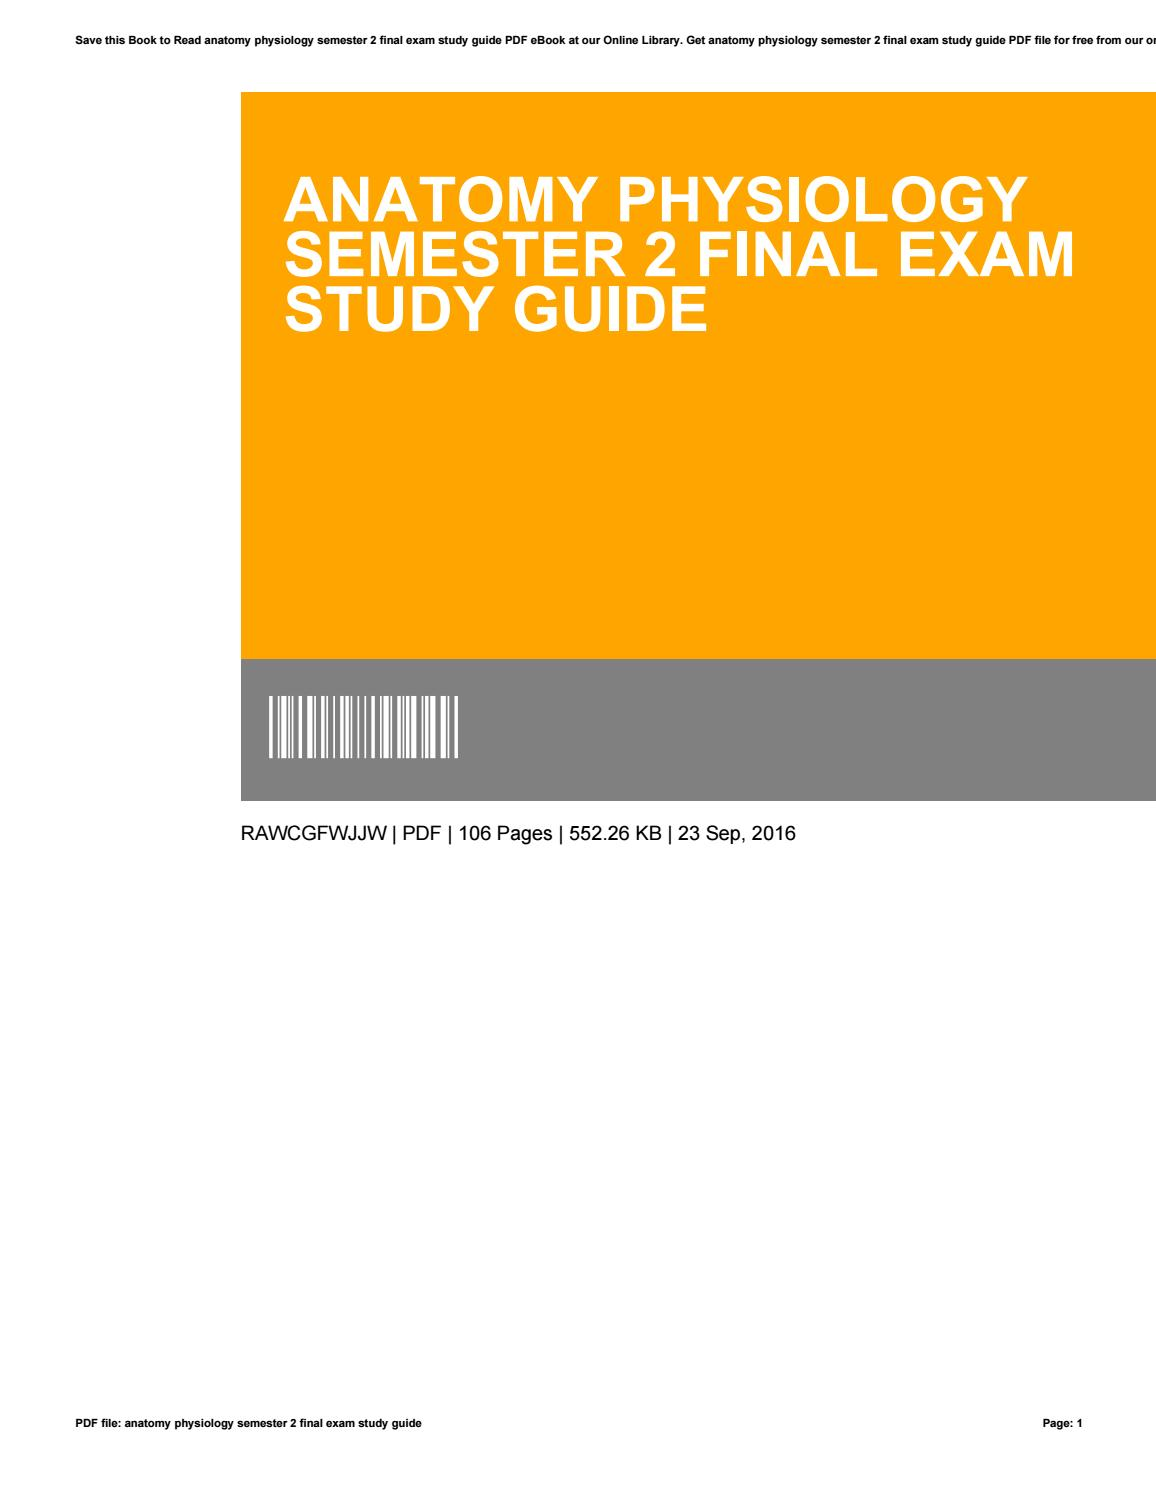 Anatomy And Physiology 2 Final Exam Pdf